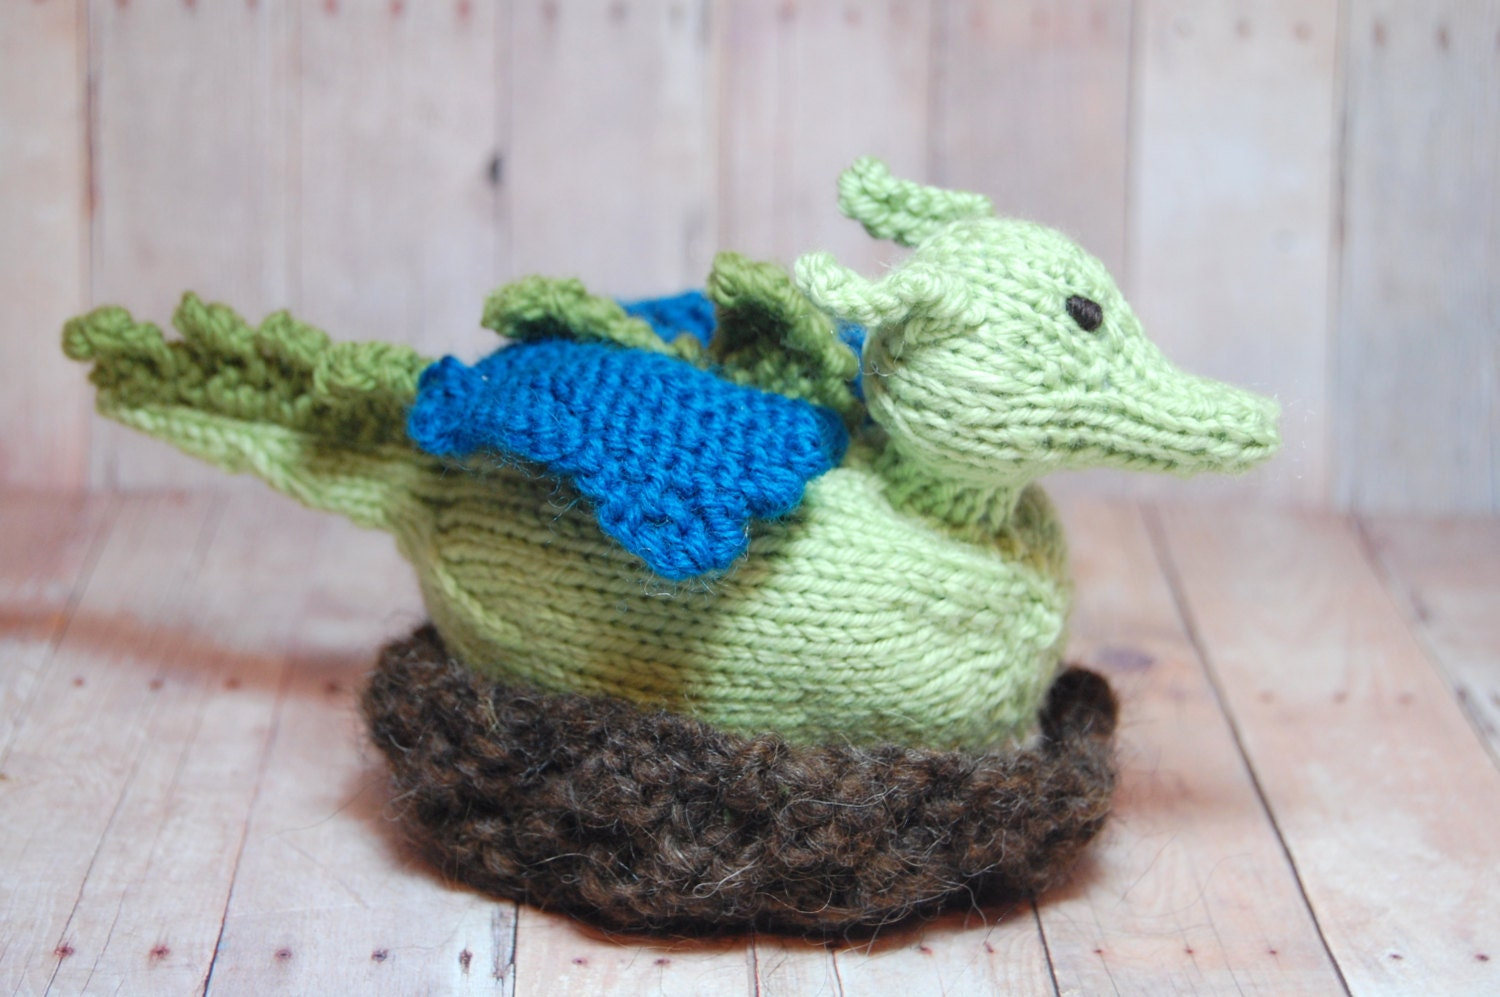 Knit Dragon Waldorf Toy Dragon Hatchling in Nest